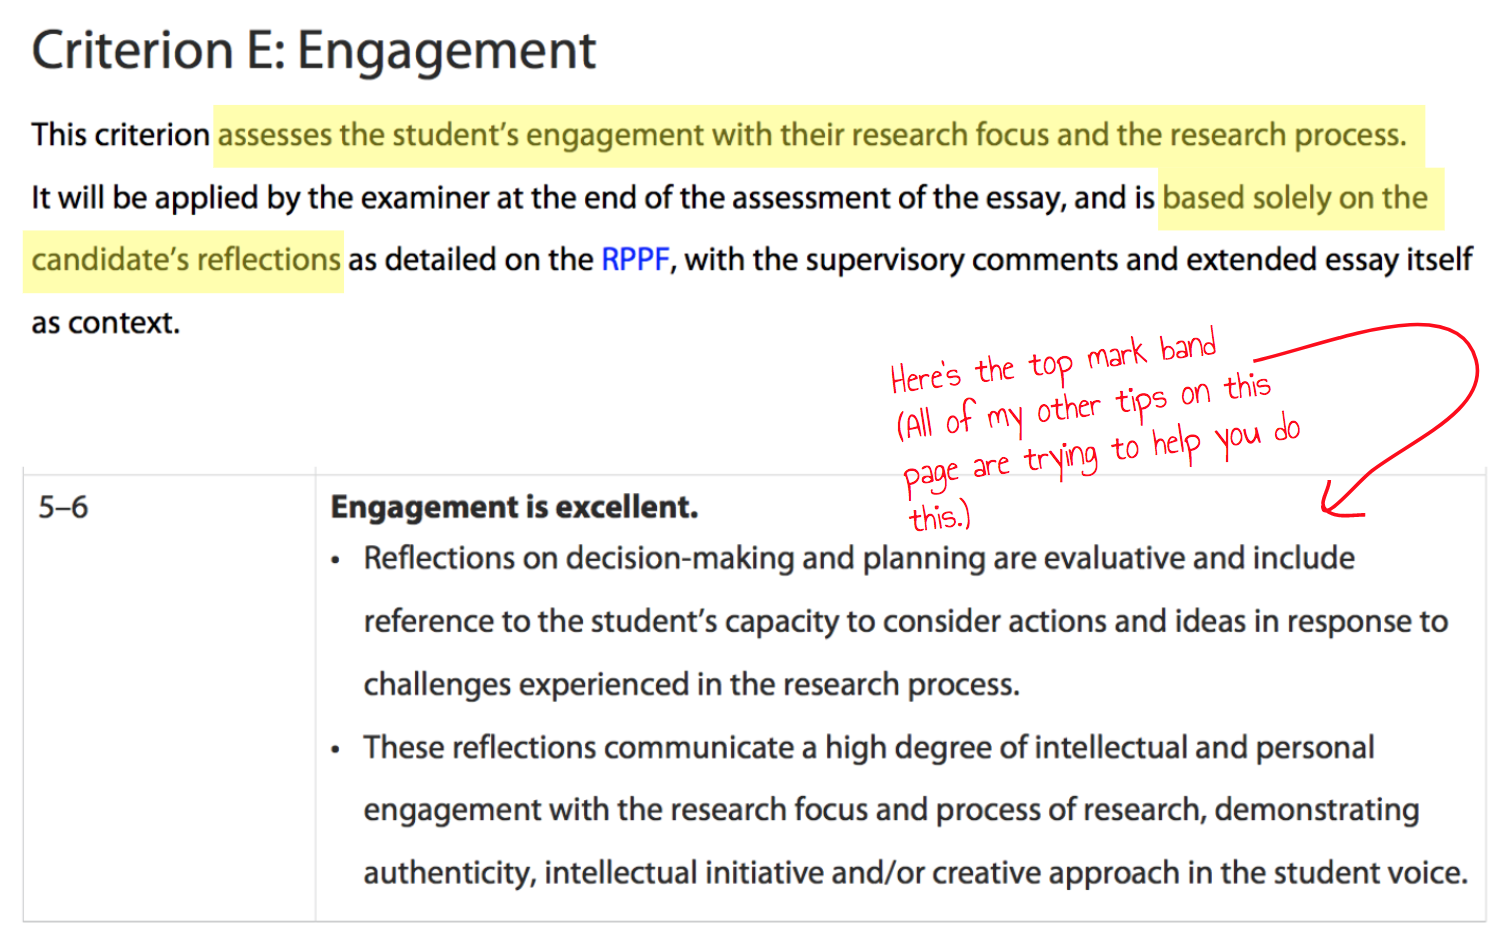 007 Lhhkxge9q7mirooowugt Screen Shot 2018 05 At 5 15 Pm Extended Essay Sample Excellent Samples Business And Management Ib English Research Questions Full